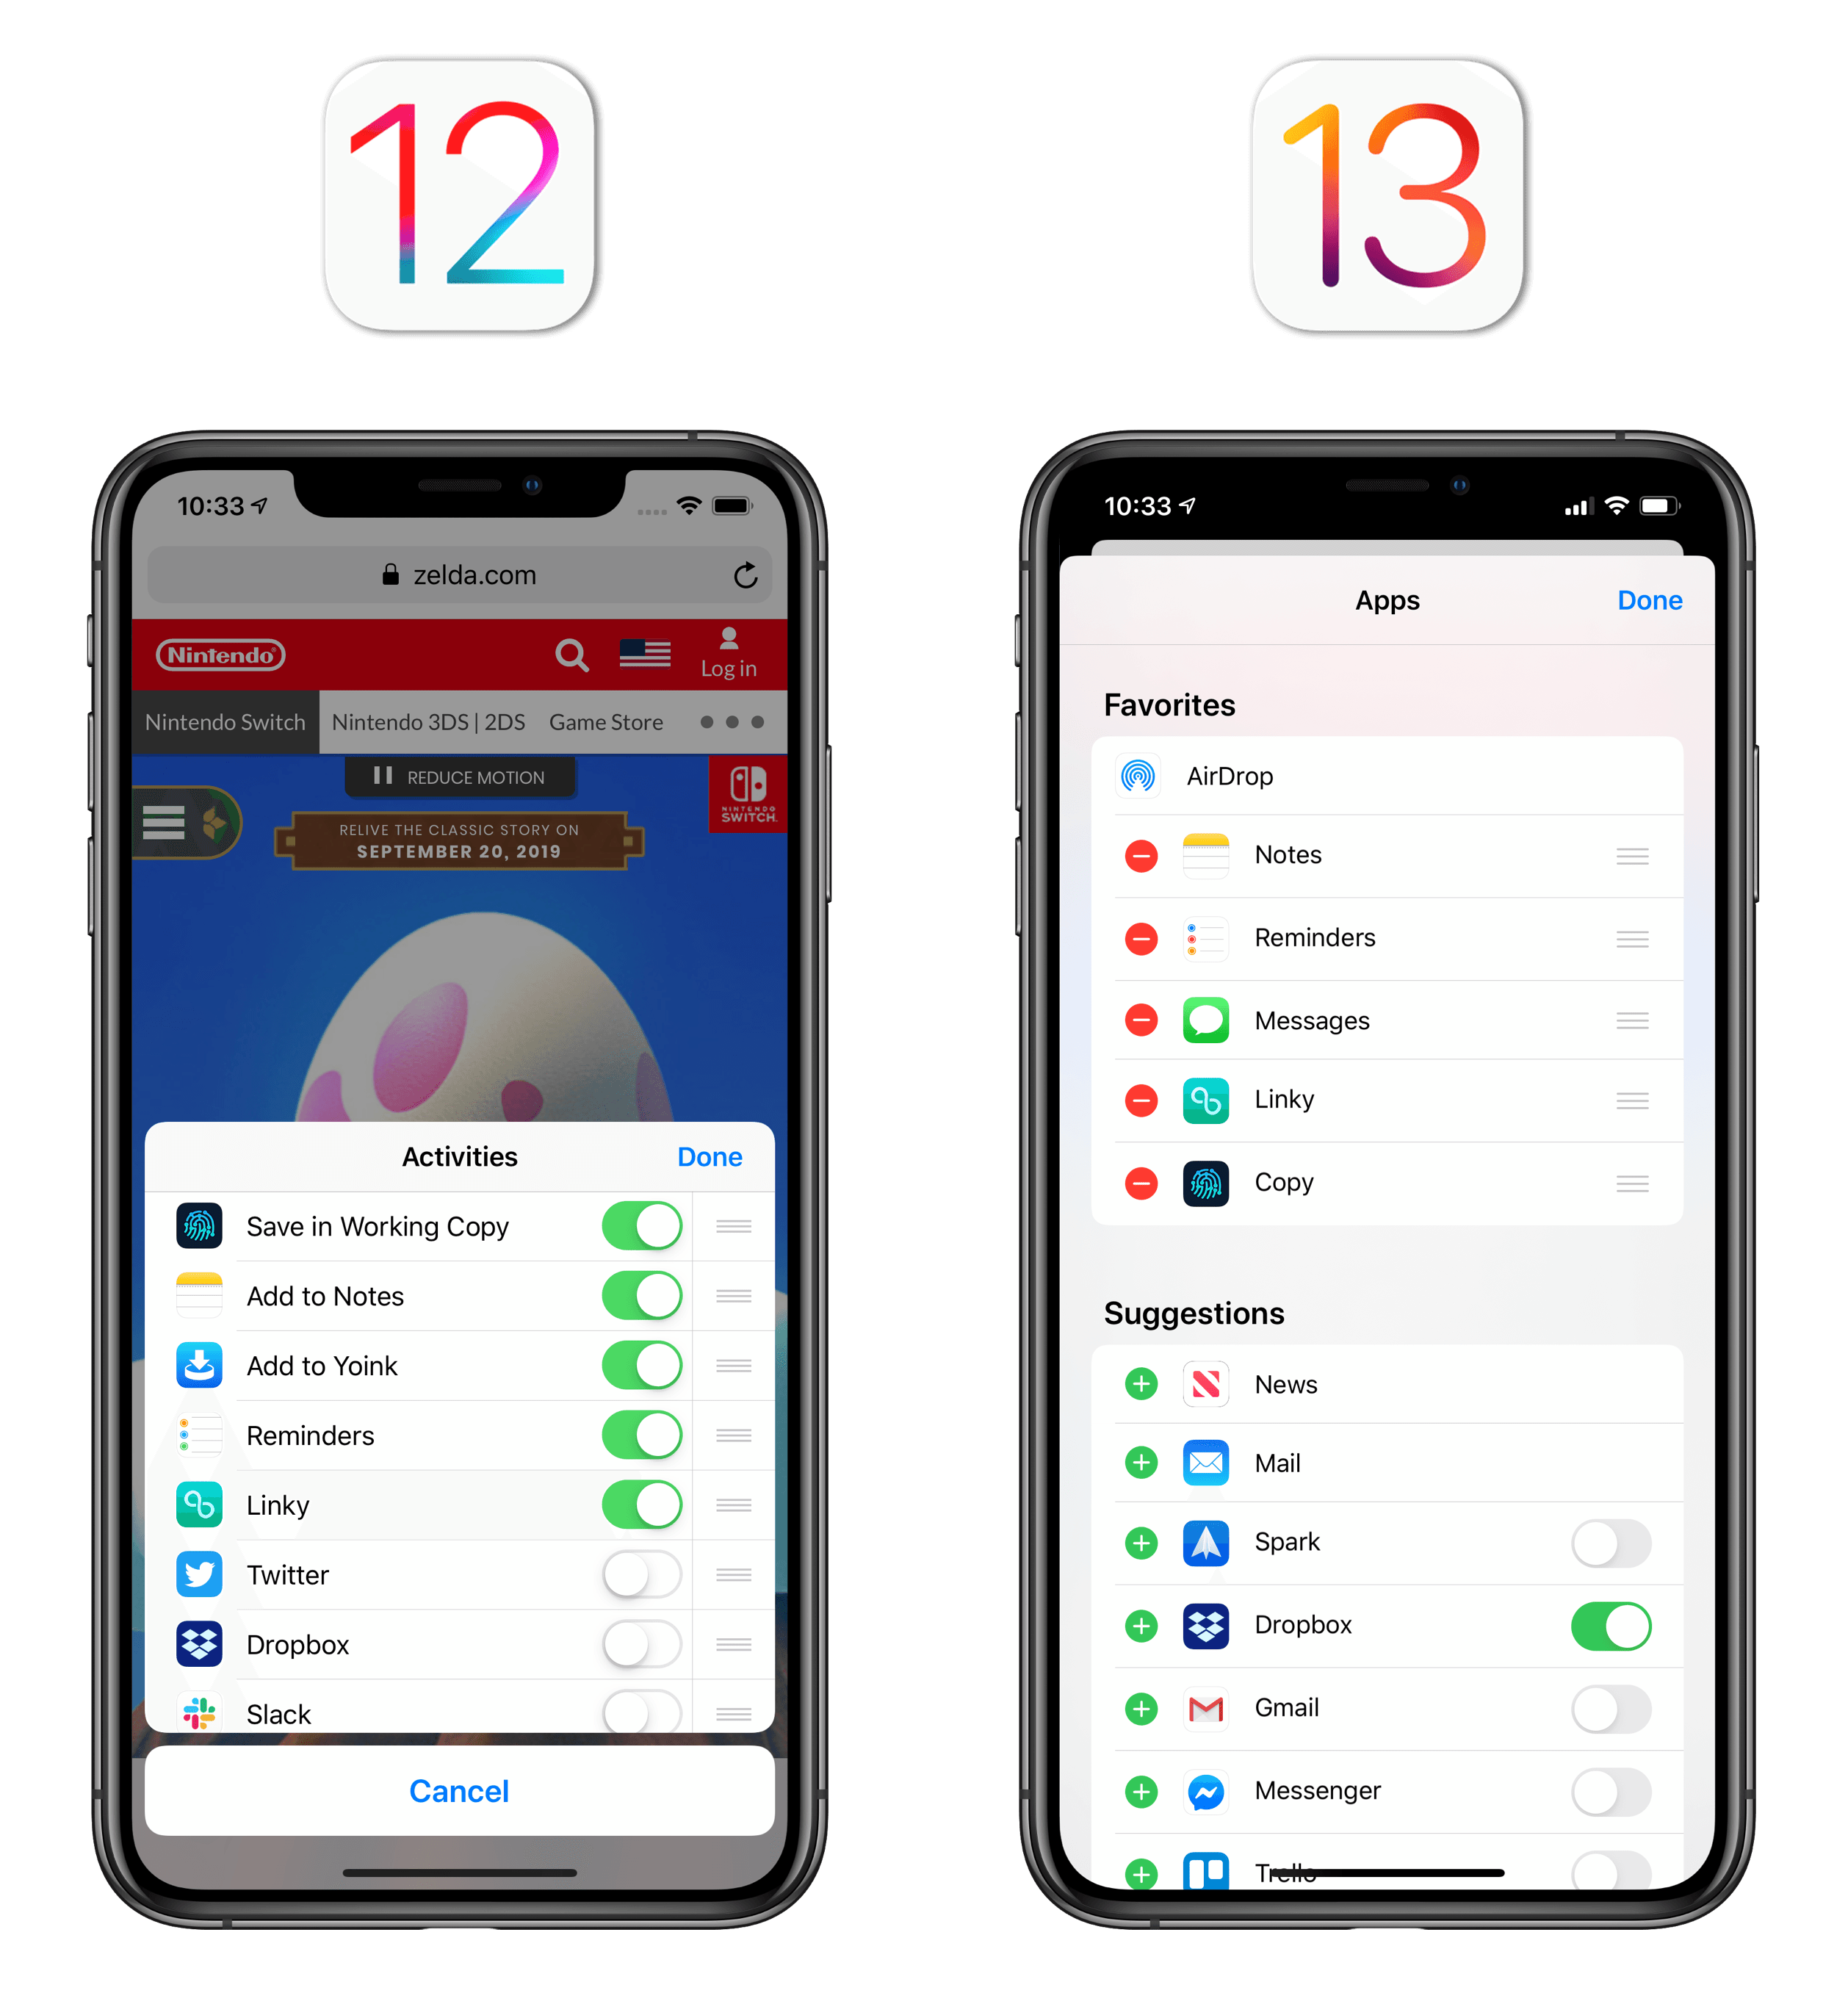 Configuring share extensions in iOS 12 and iOS 13.